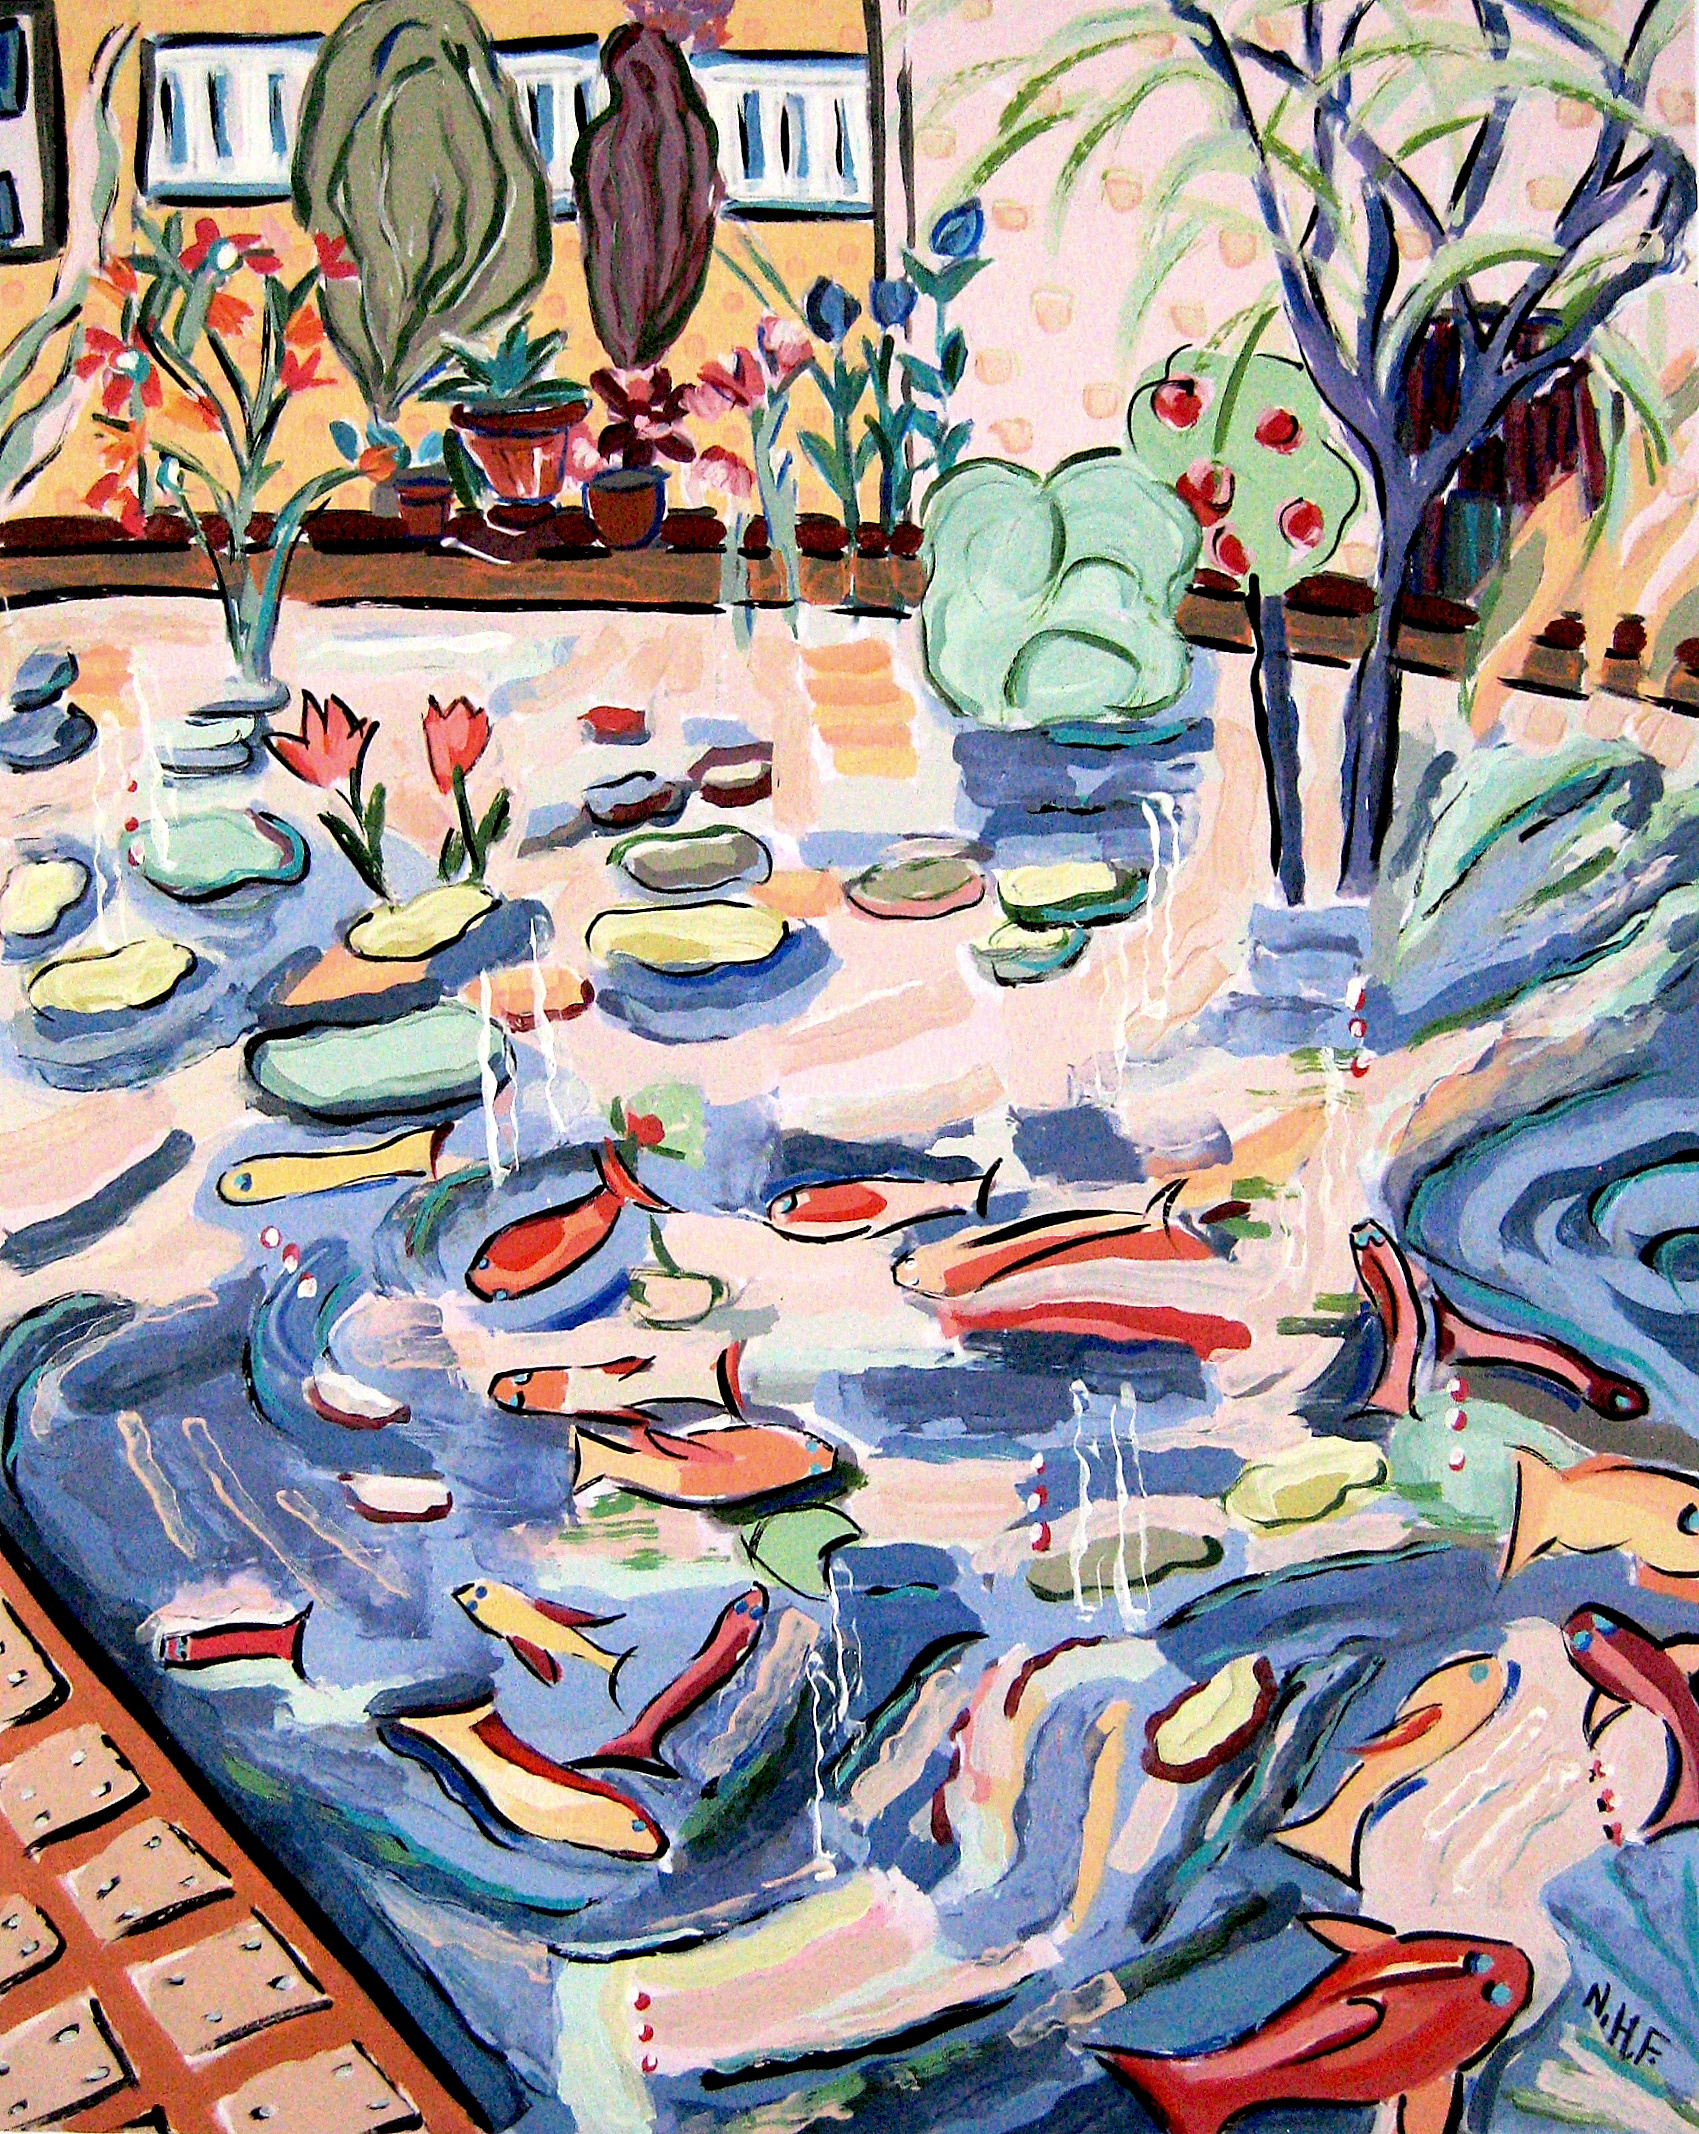 Bright Gardens of Fish 2 , acrylic on mounted board, 18x15, 22x20 matted